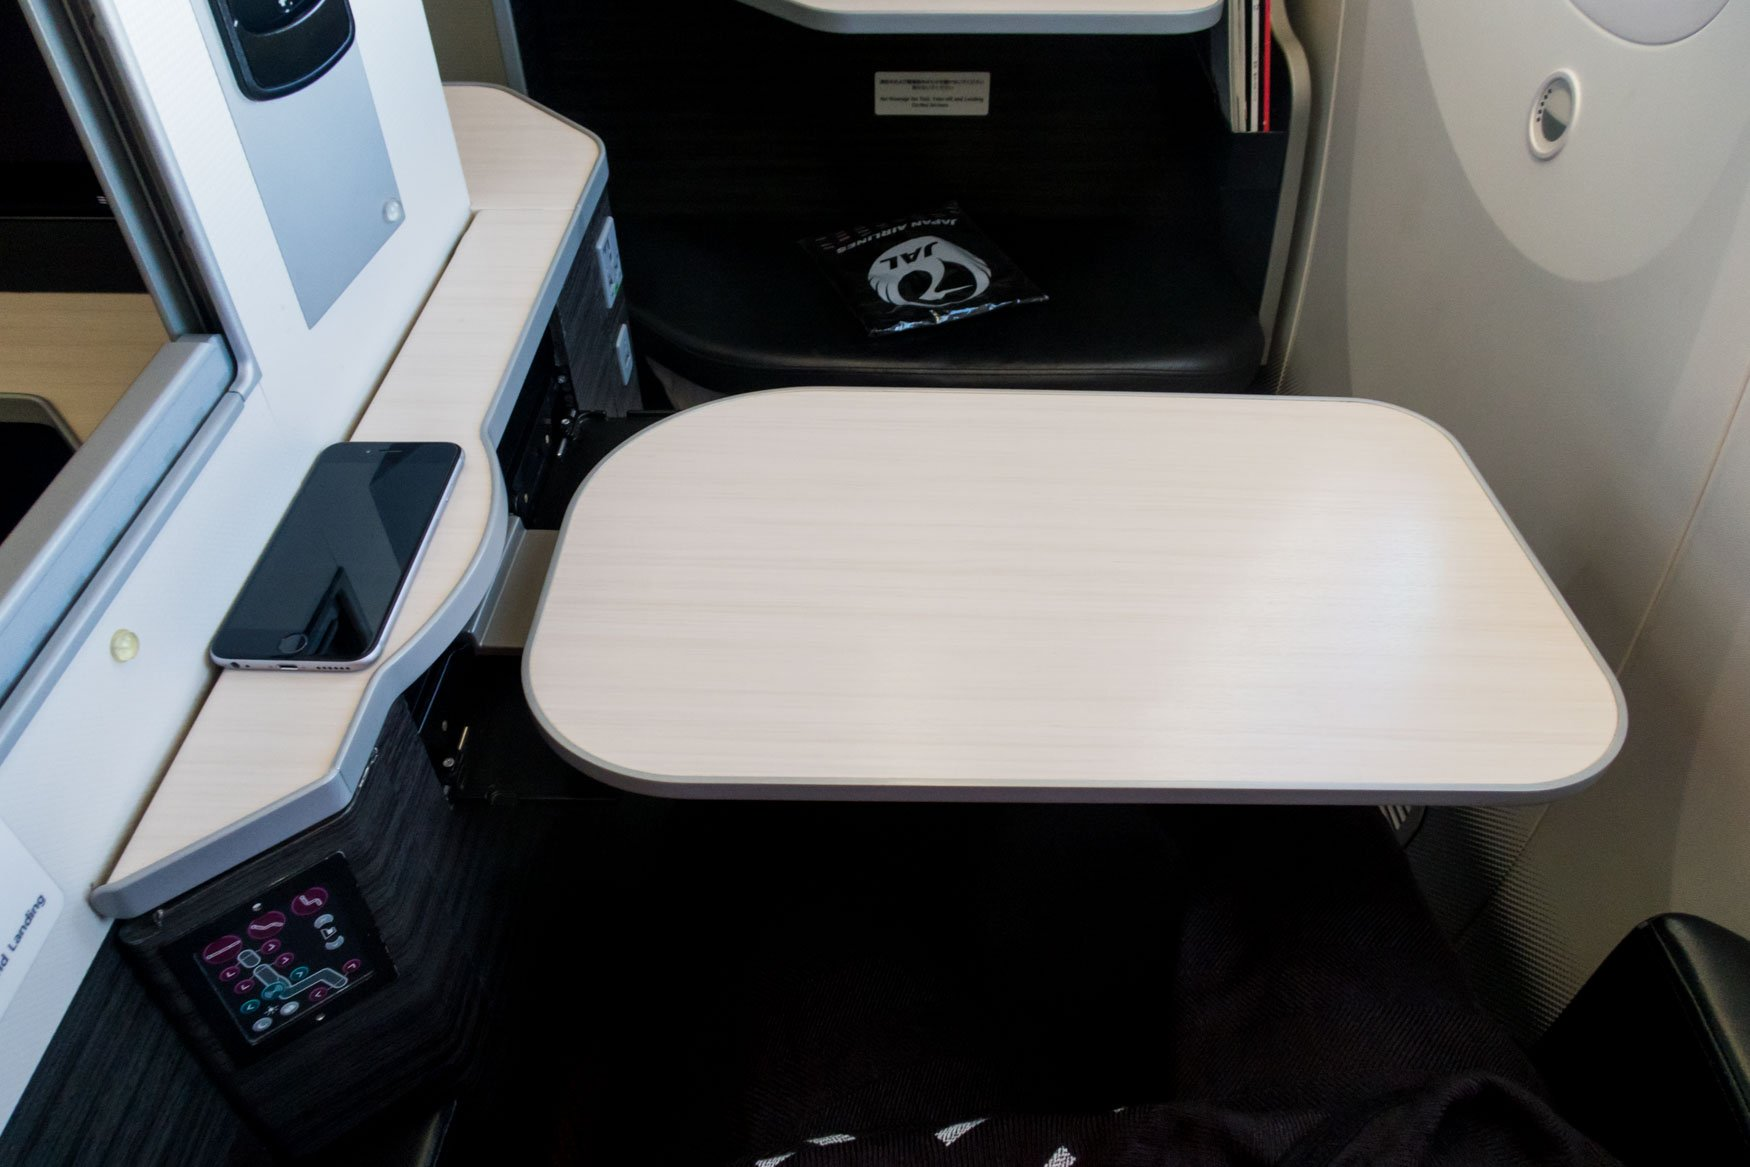 Japan Airlines Apex Suite Tray Table